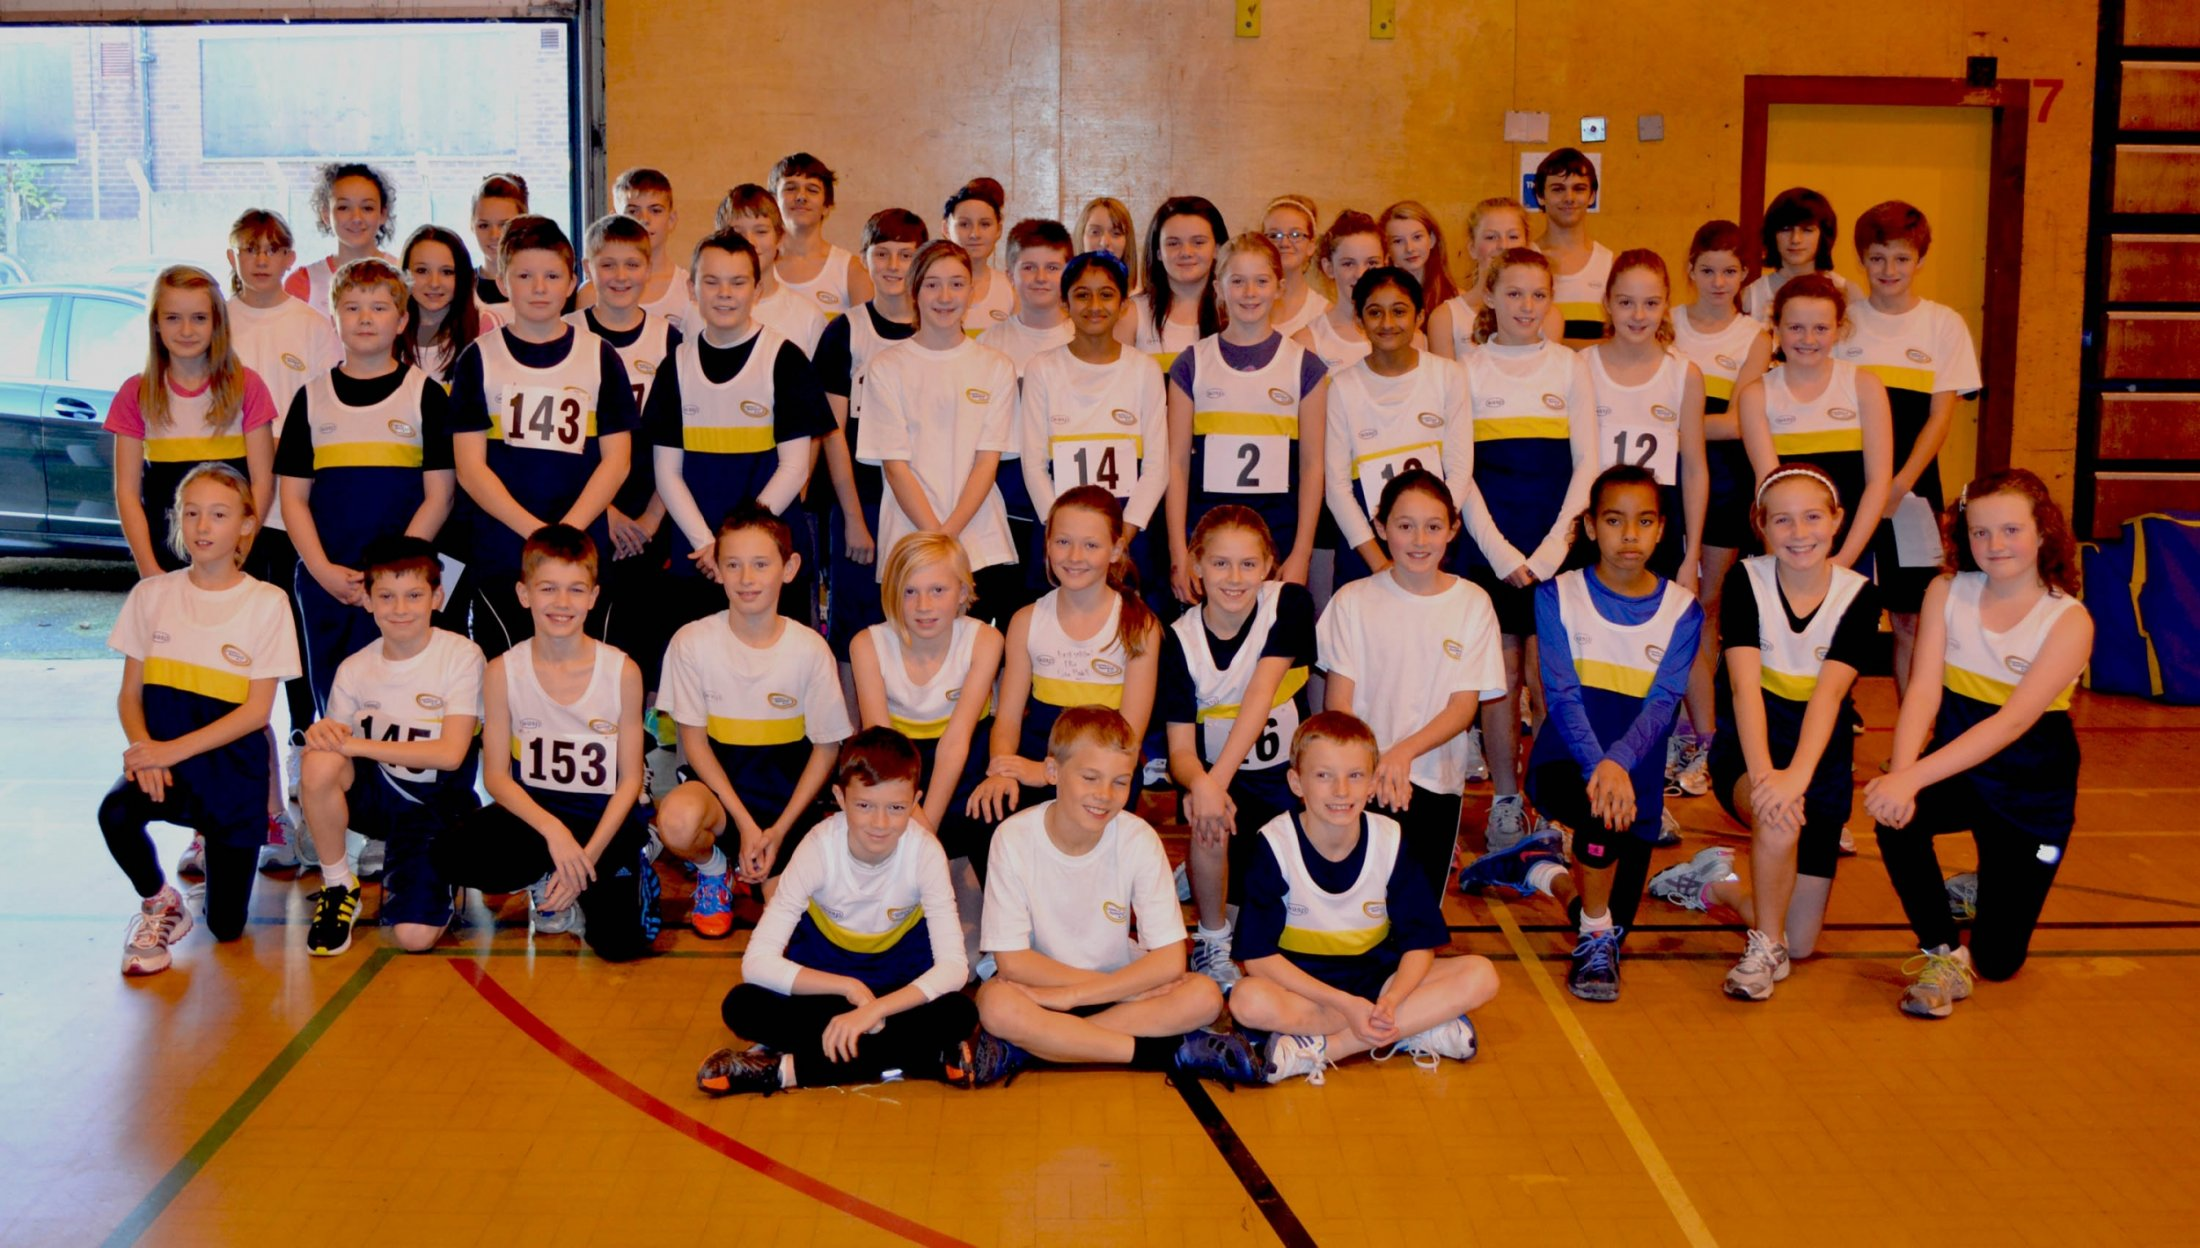 Cnac Team Widnes Sportshall 181112 Photo Courtsey Of Ian Williamson 2 -3196